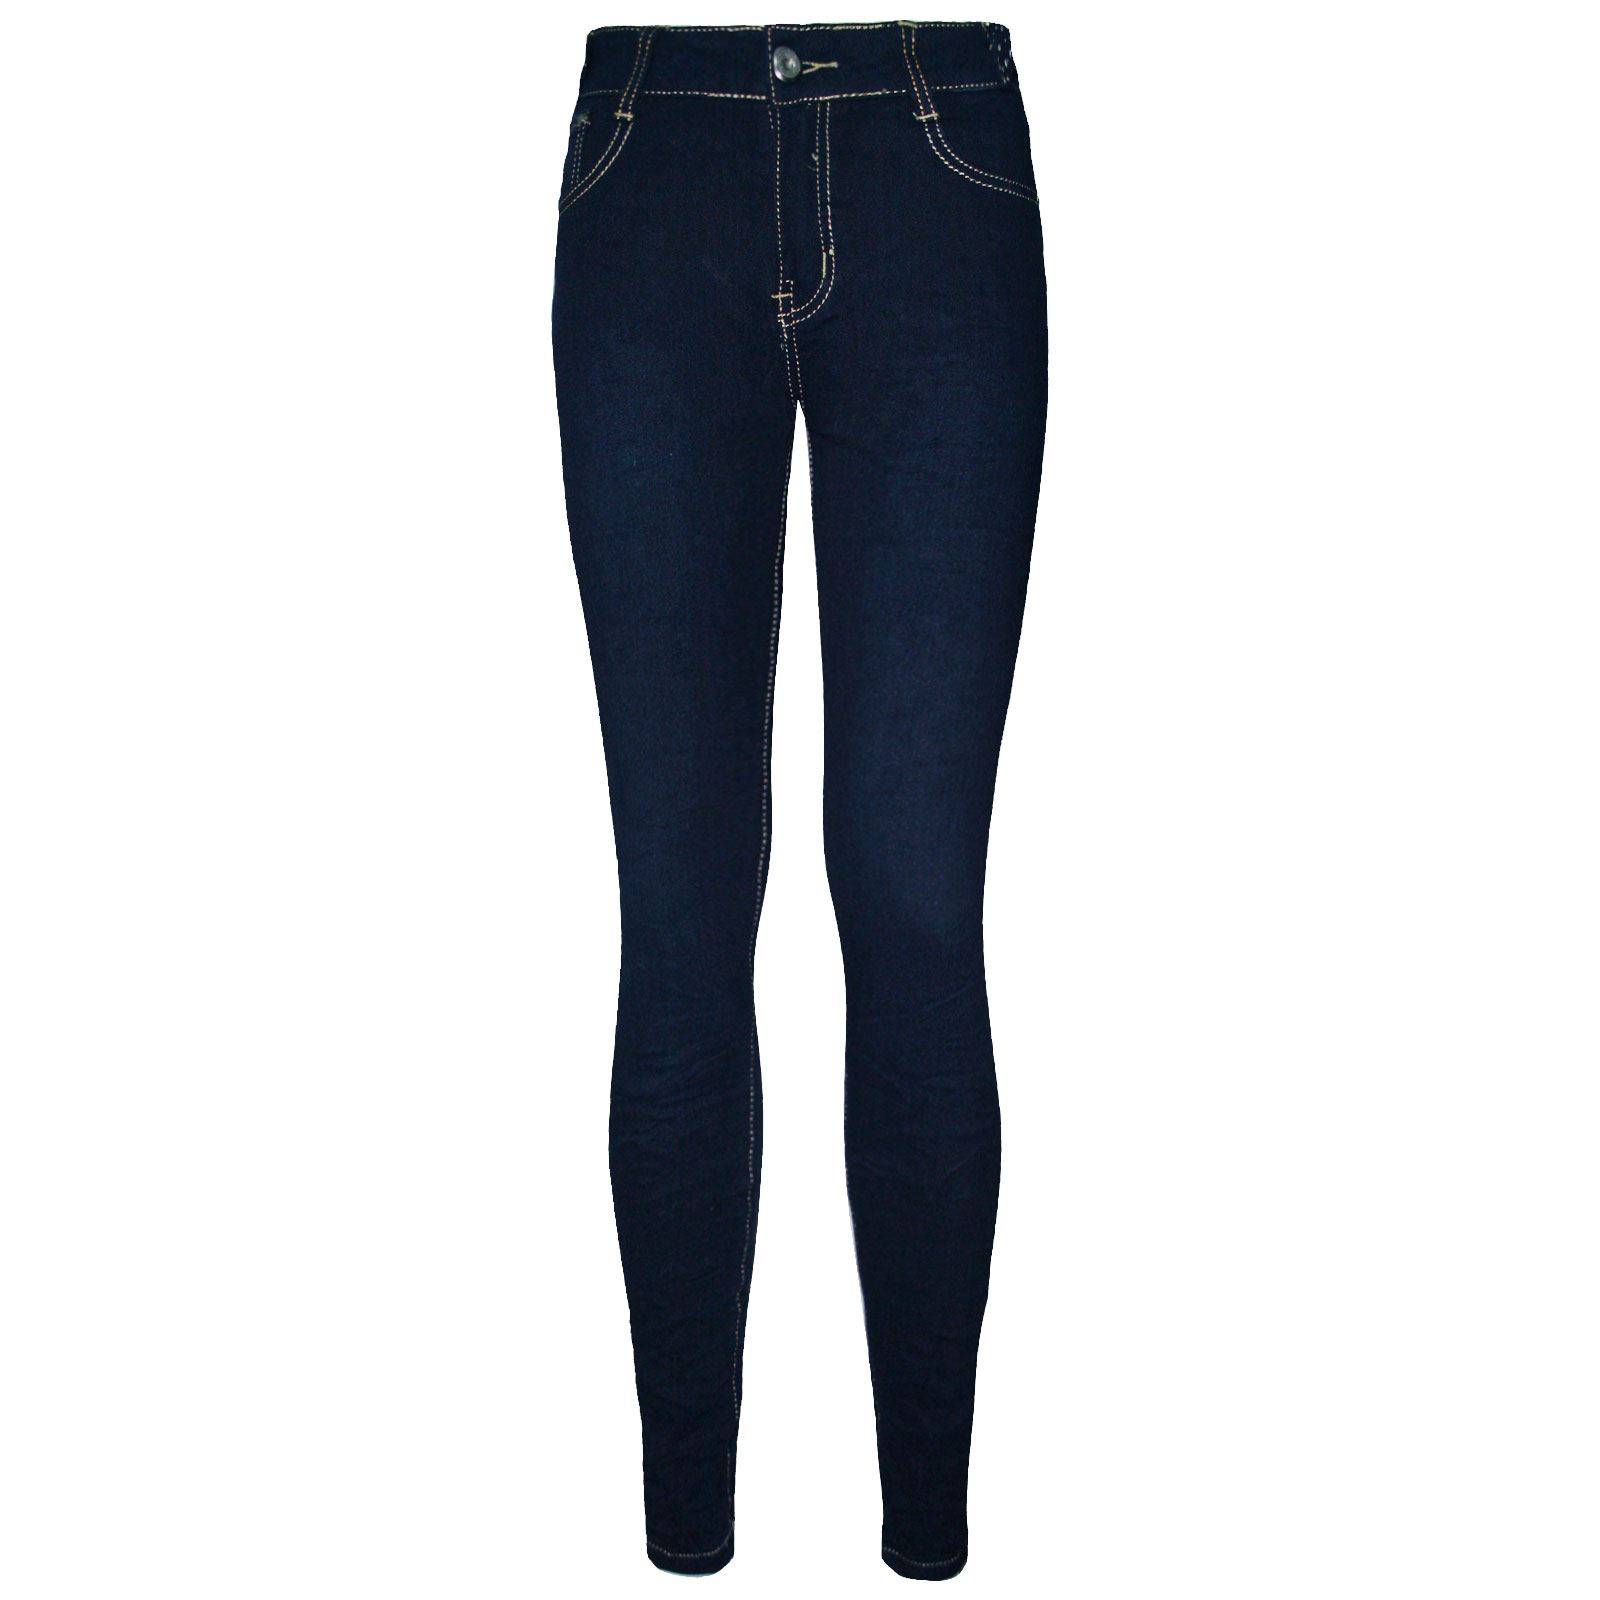 Shop UNIQLO for the best value on women's pants and leggings and shop for a variety of women's pant styles like ankle length, wide leg, jeggings, casual women's slacks, gauchos, drapey pants and .